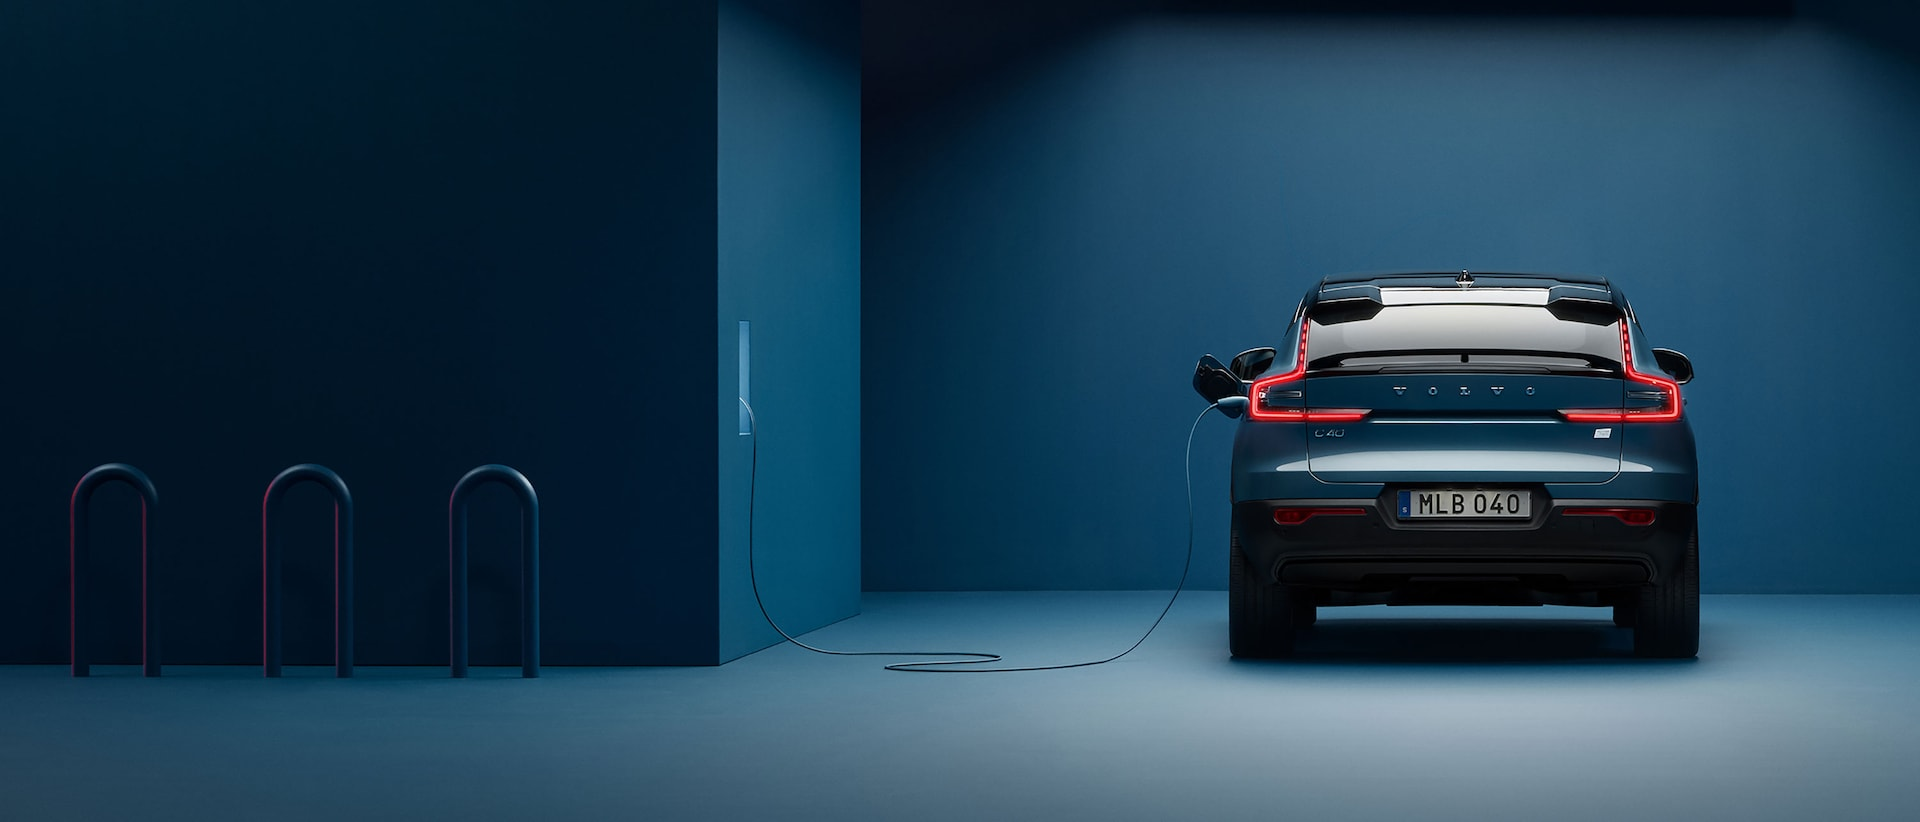 A Volvo C40 Recharge is seen from the rear being charged from a wallbox in a dark blue room.